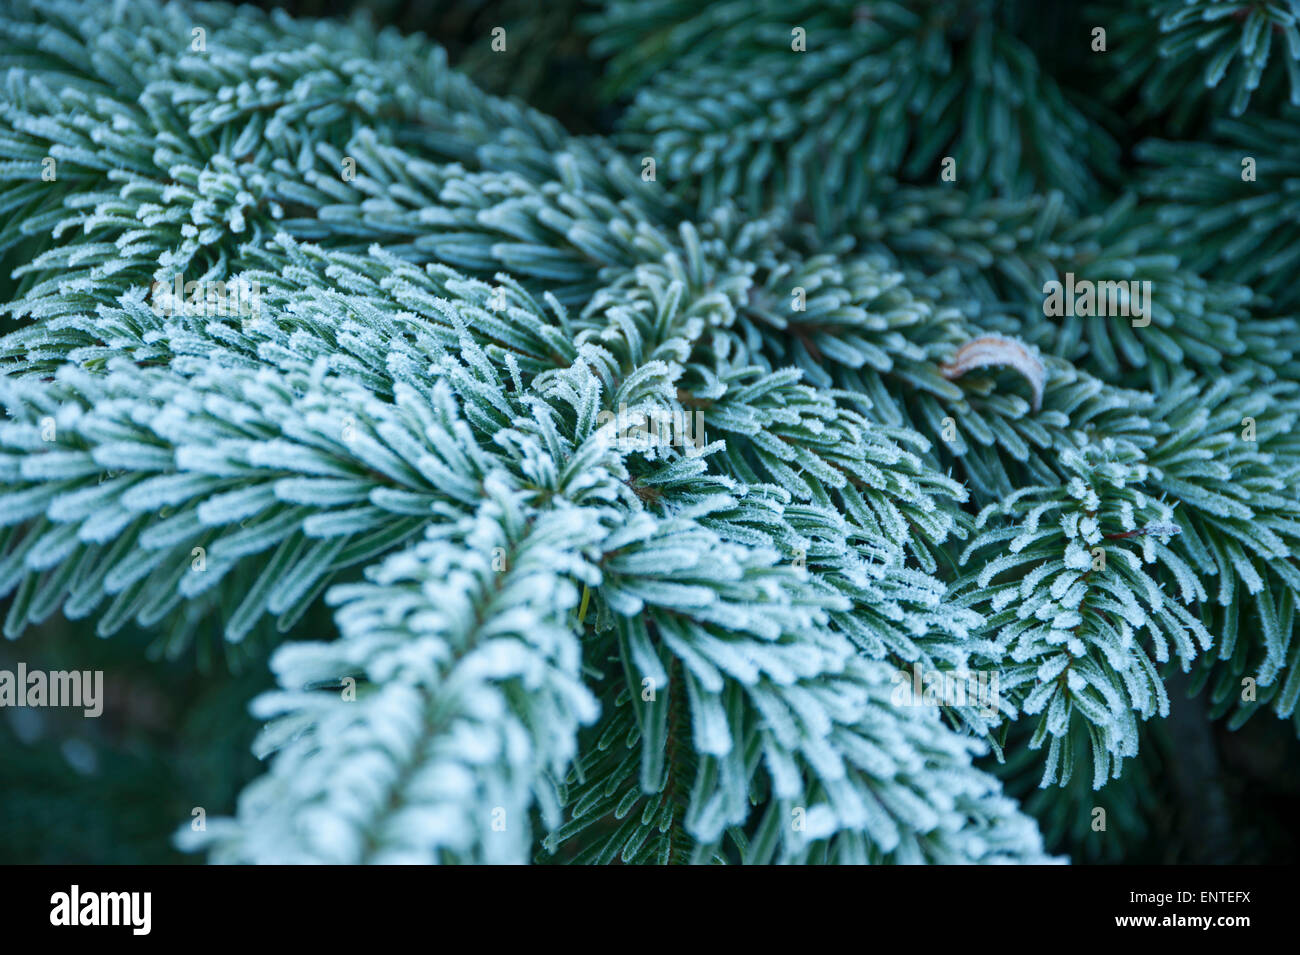 Close-up of a Sitka spruce fir tree branch covered in frost in winter, UK - Stock Image